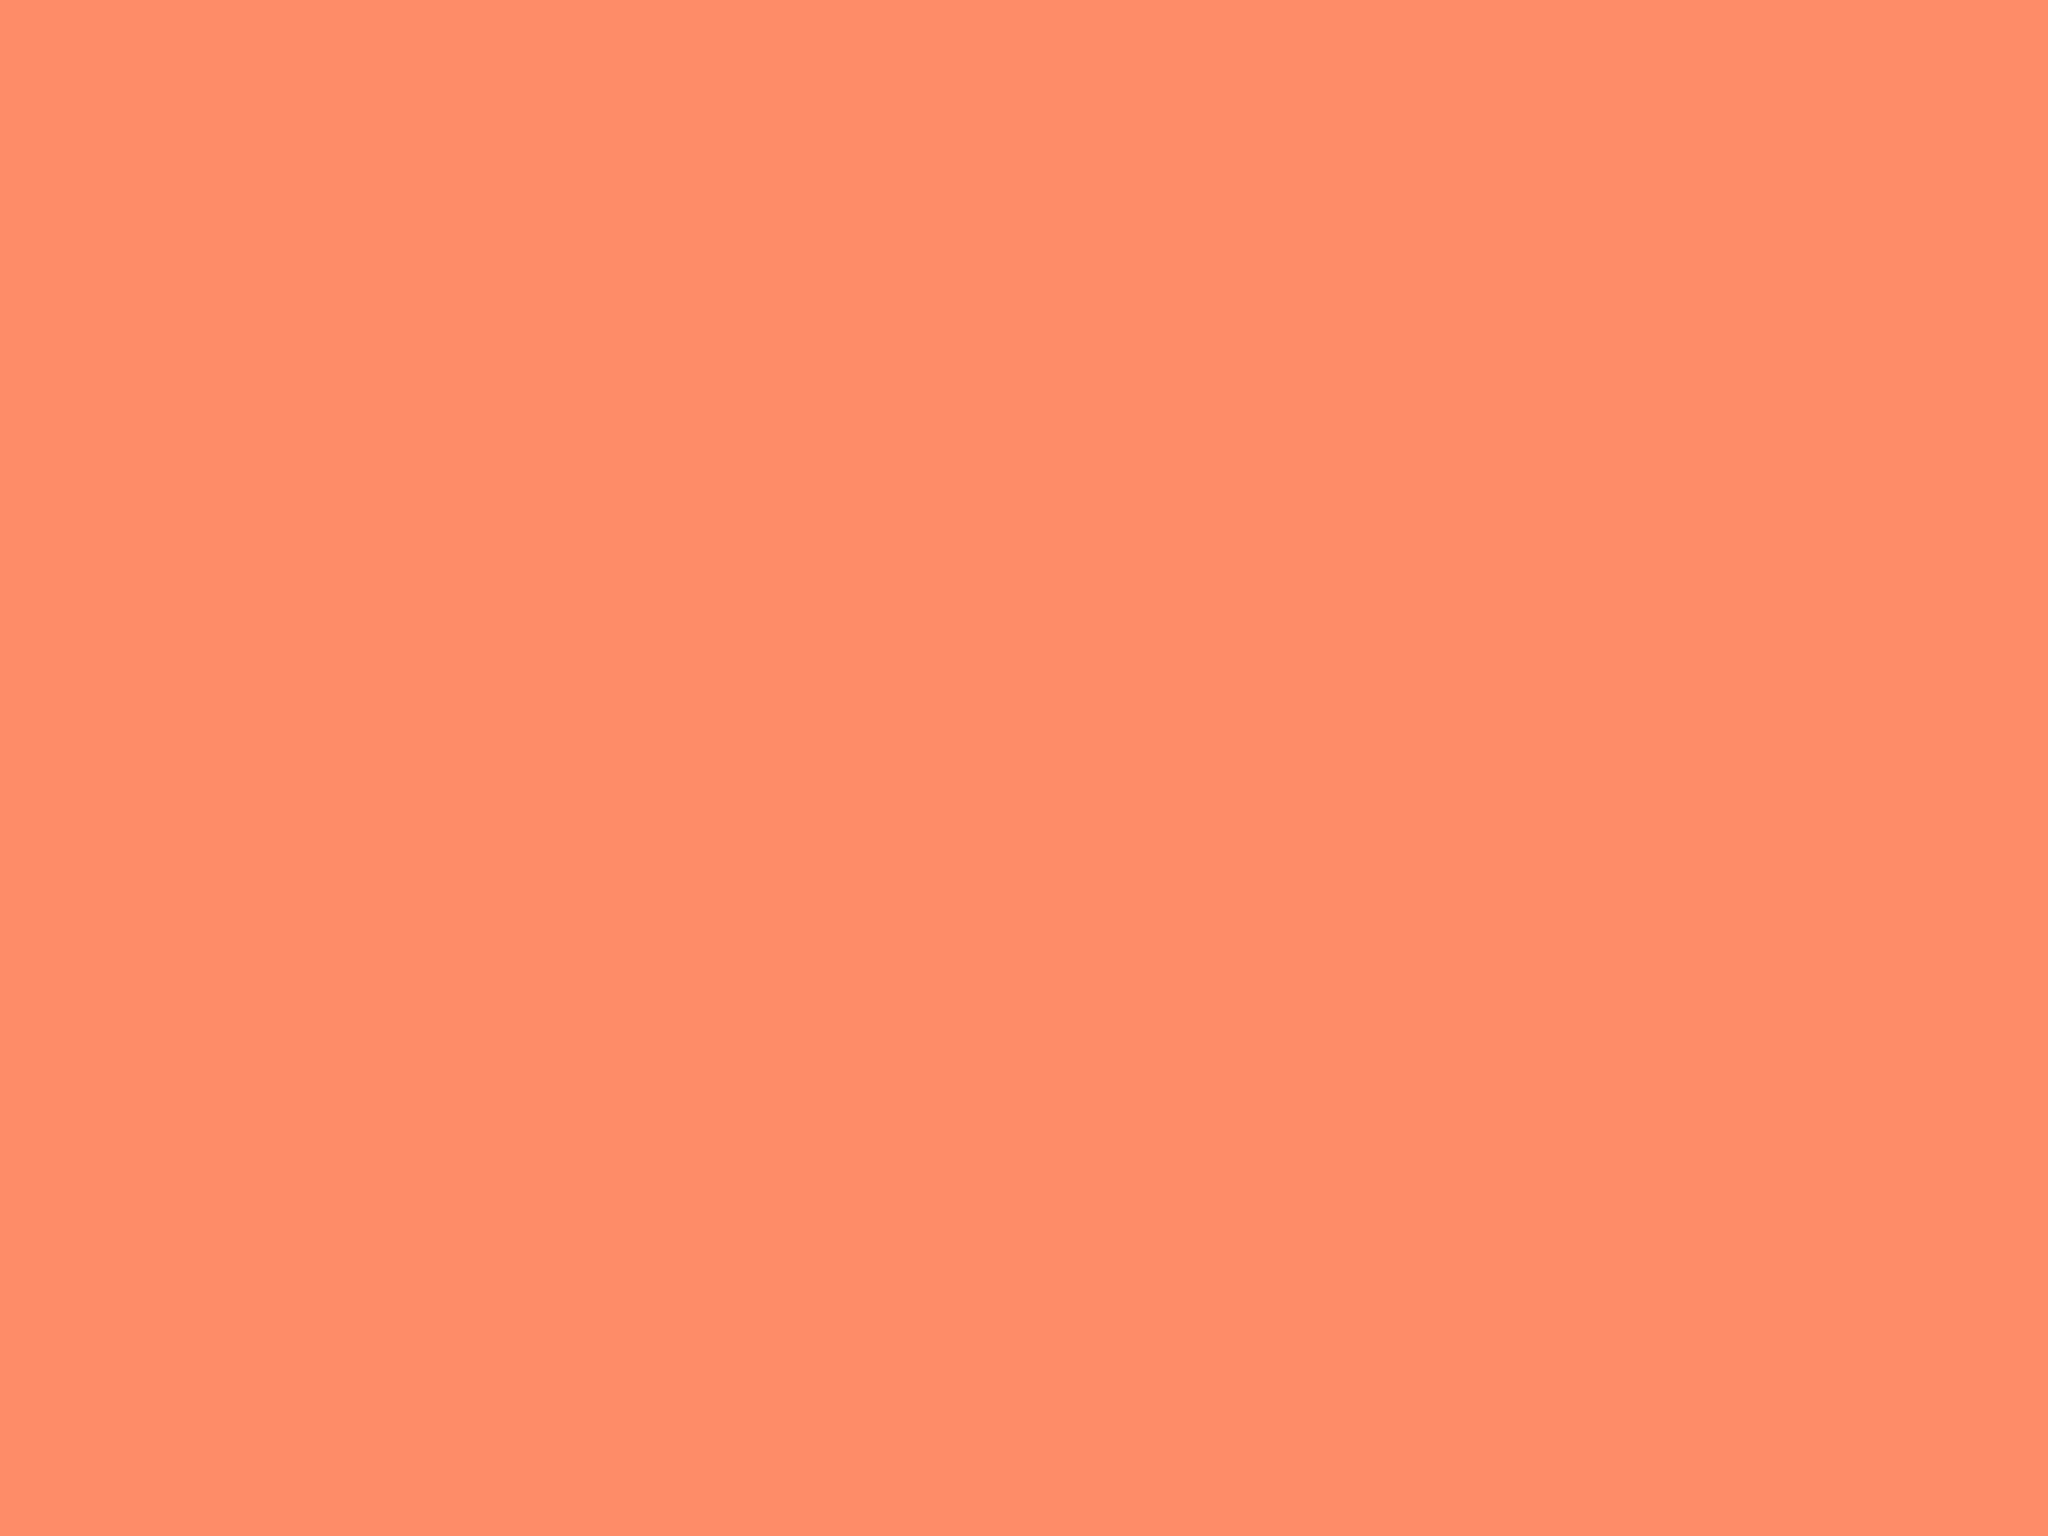 2048x1536 Salmon Solid Color Background